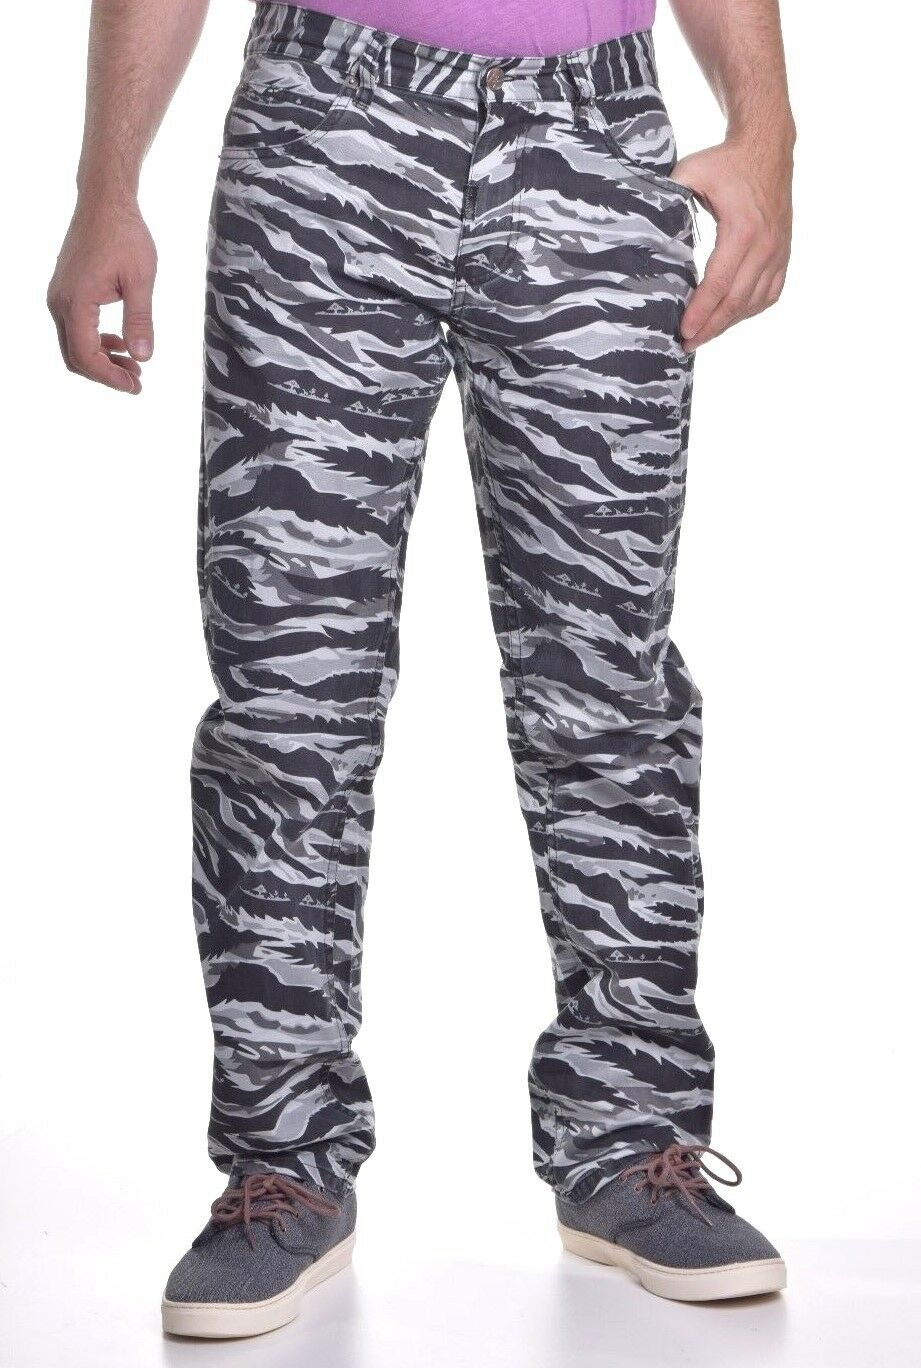 LRG Lifted Research Group Men's  True Straight Fit Camo Pants Choose Size